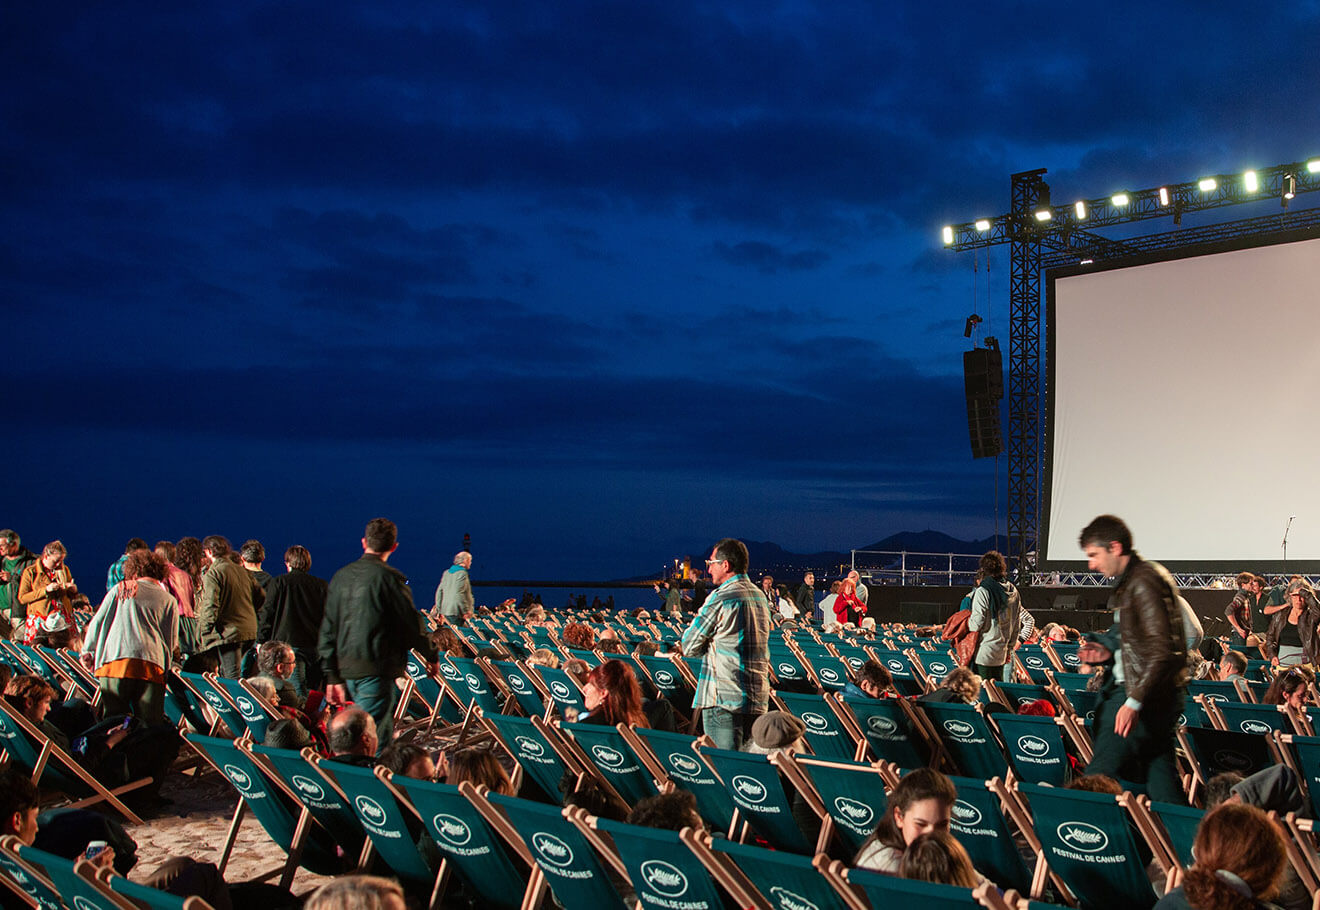 Outdoor film screening on a beach